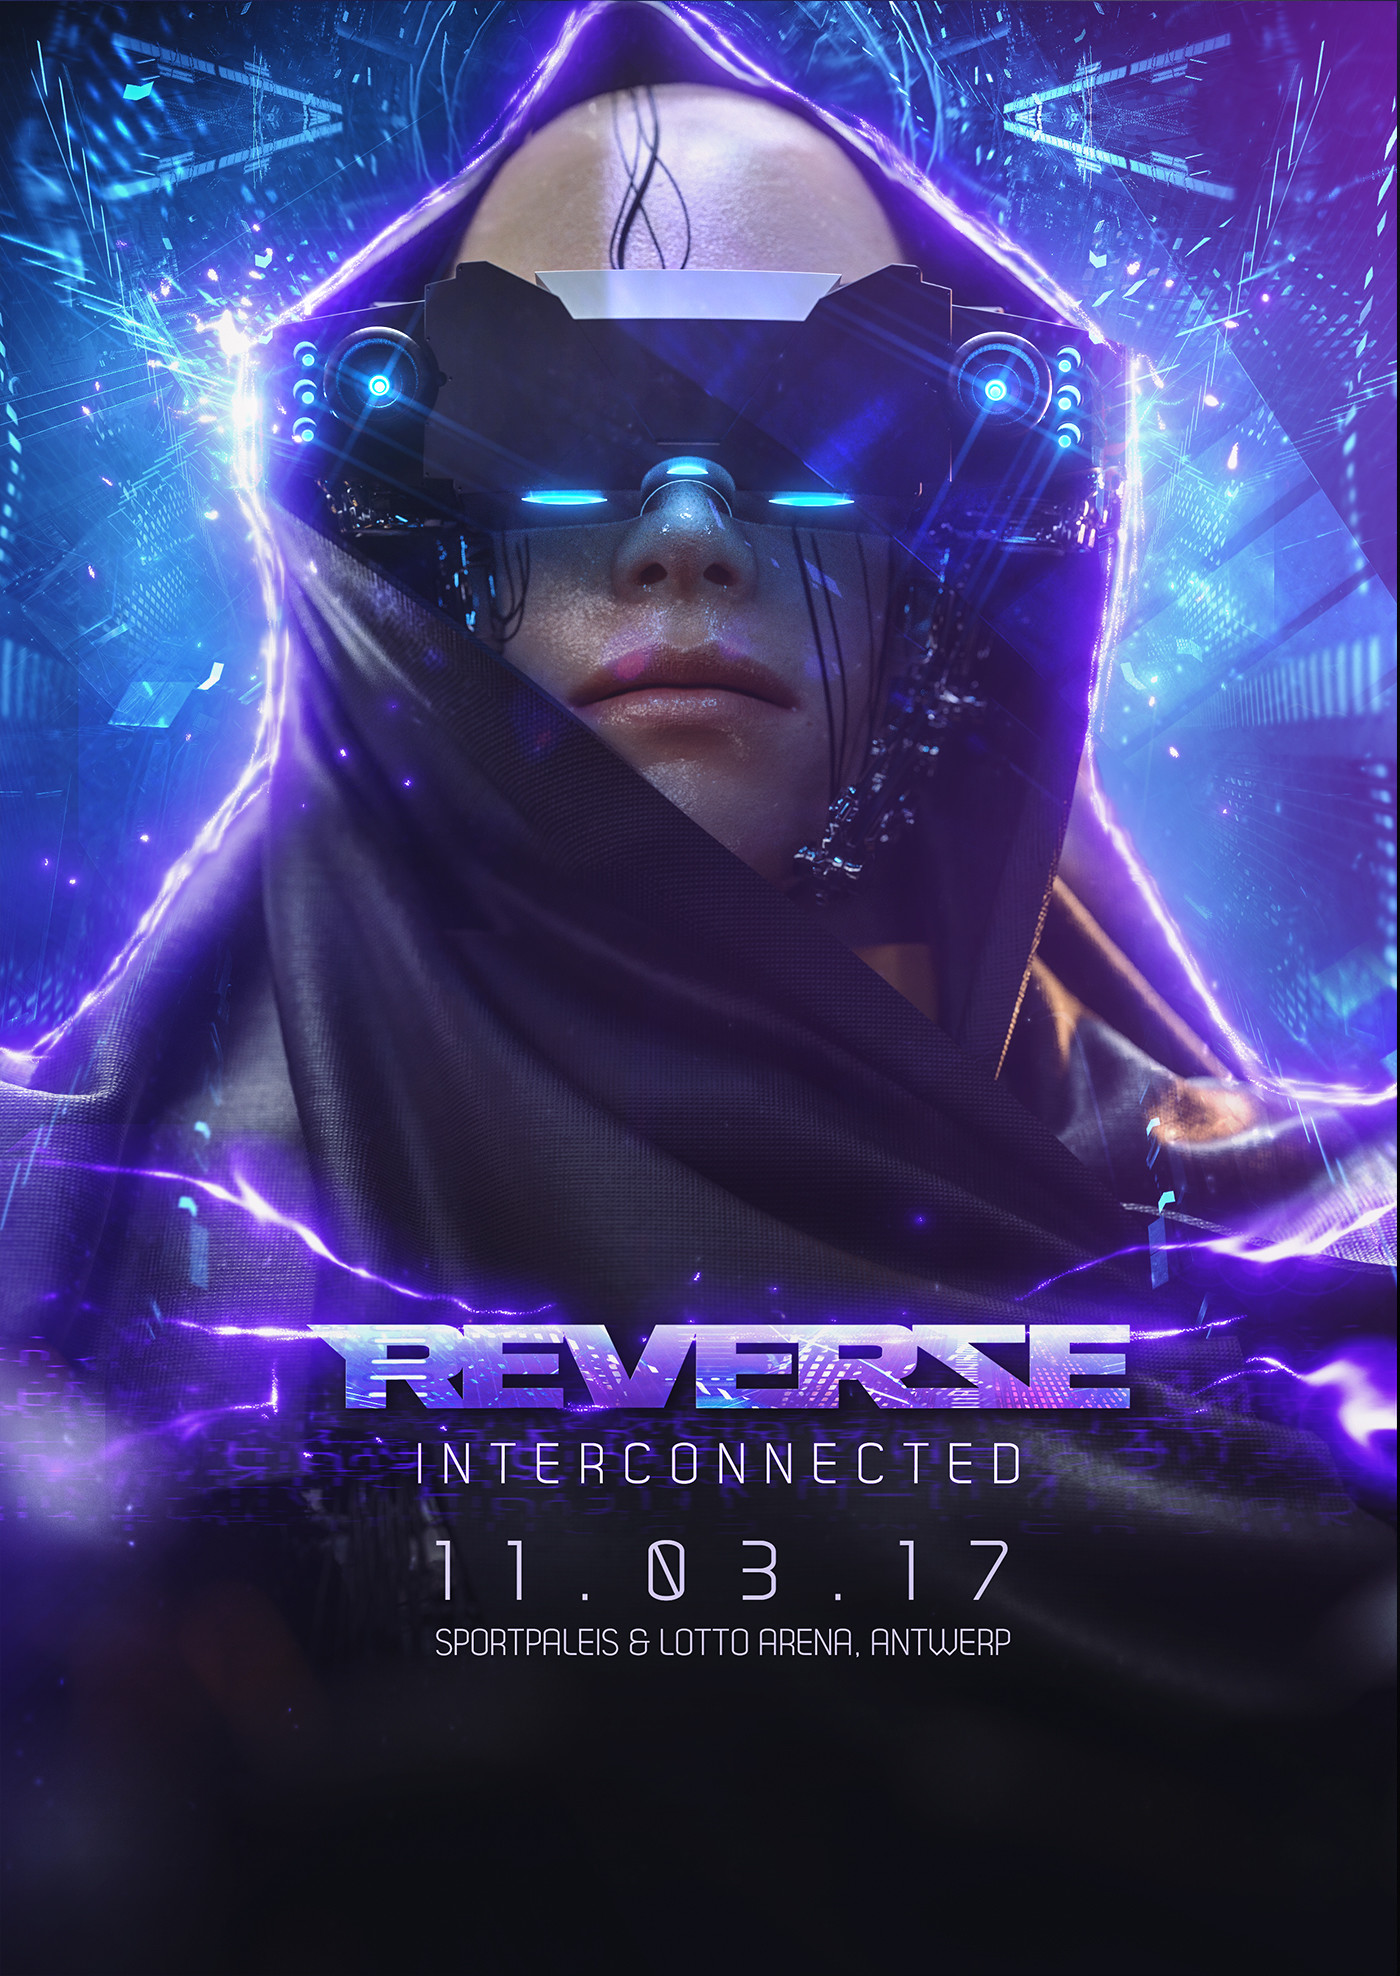 Reverze interconnected